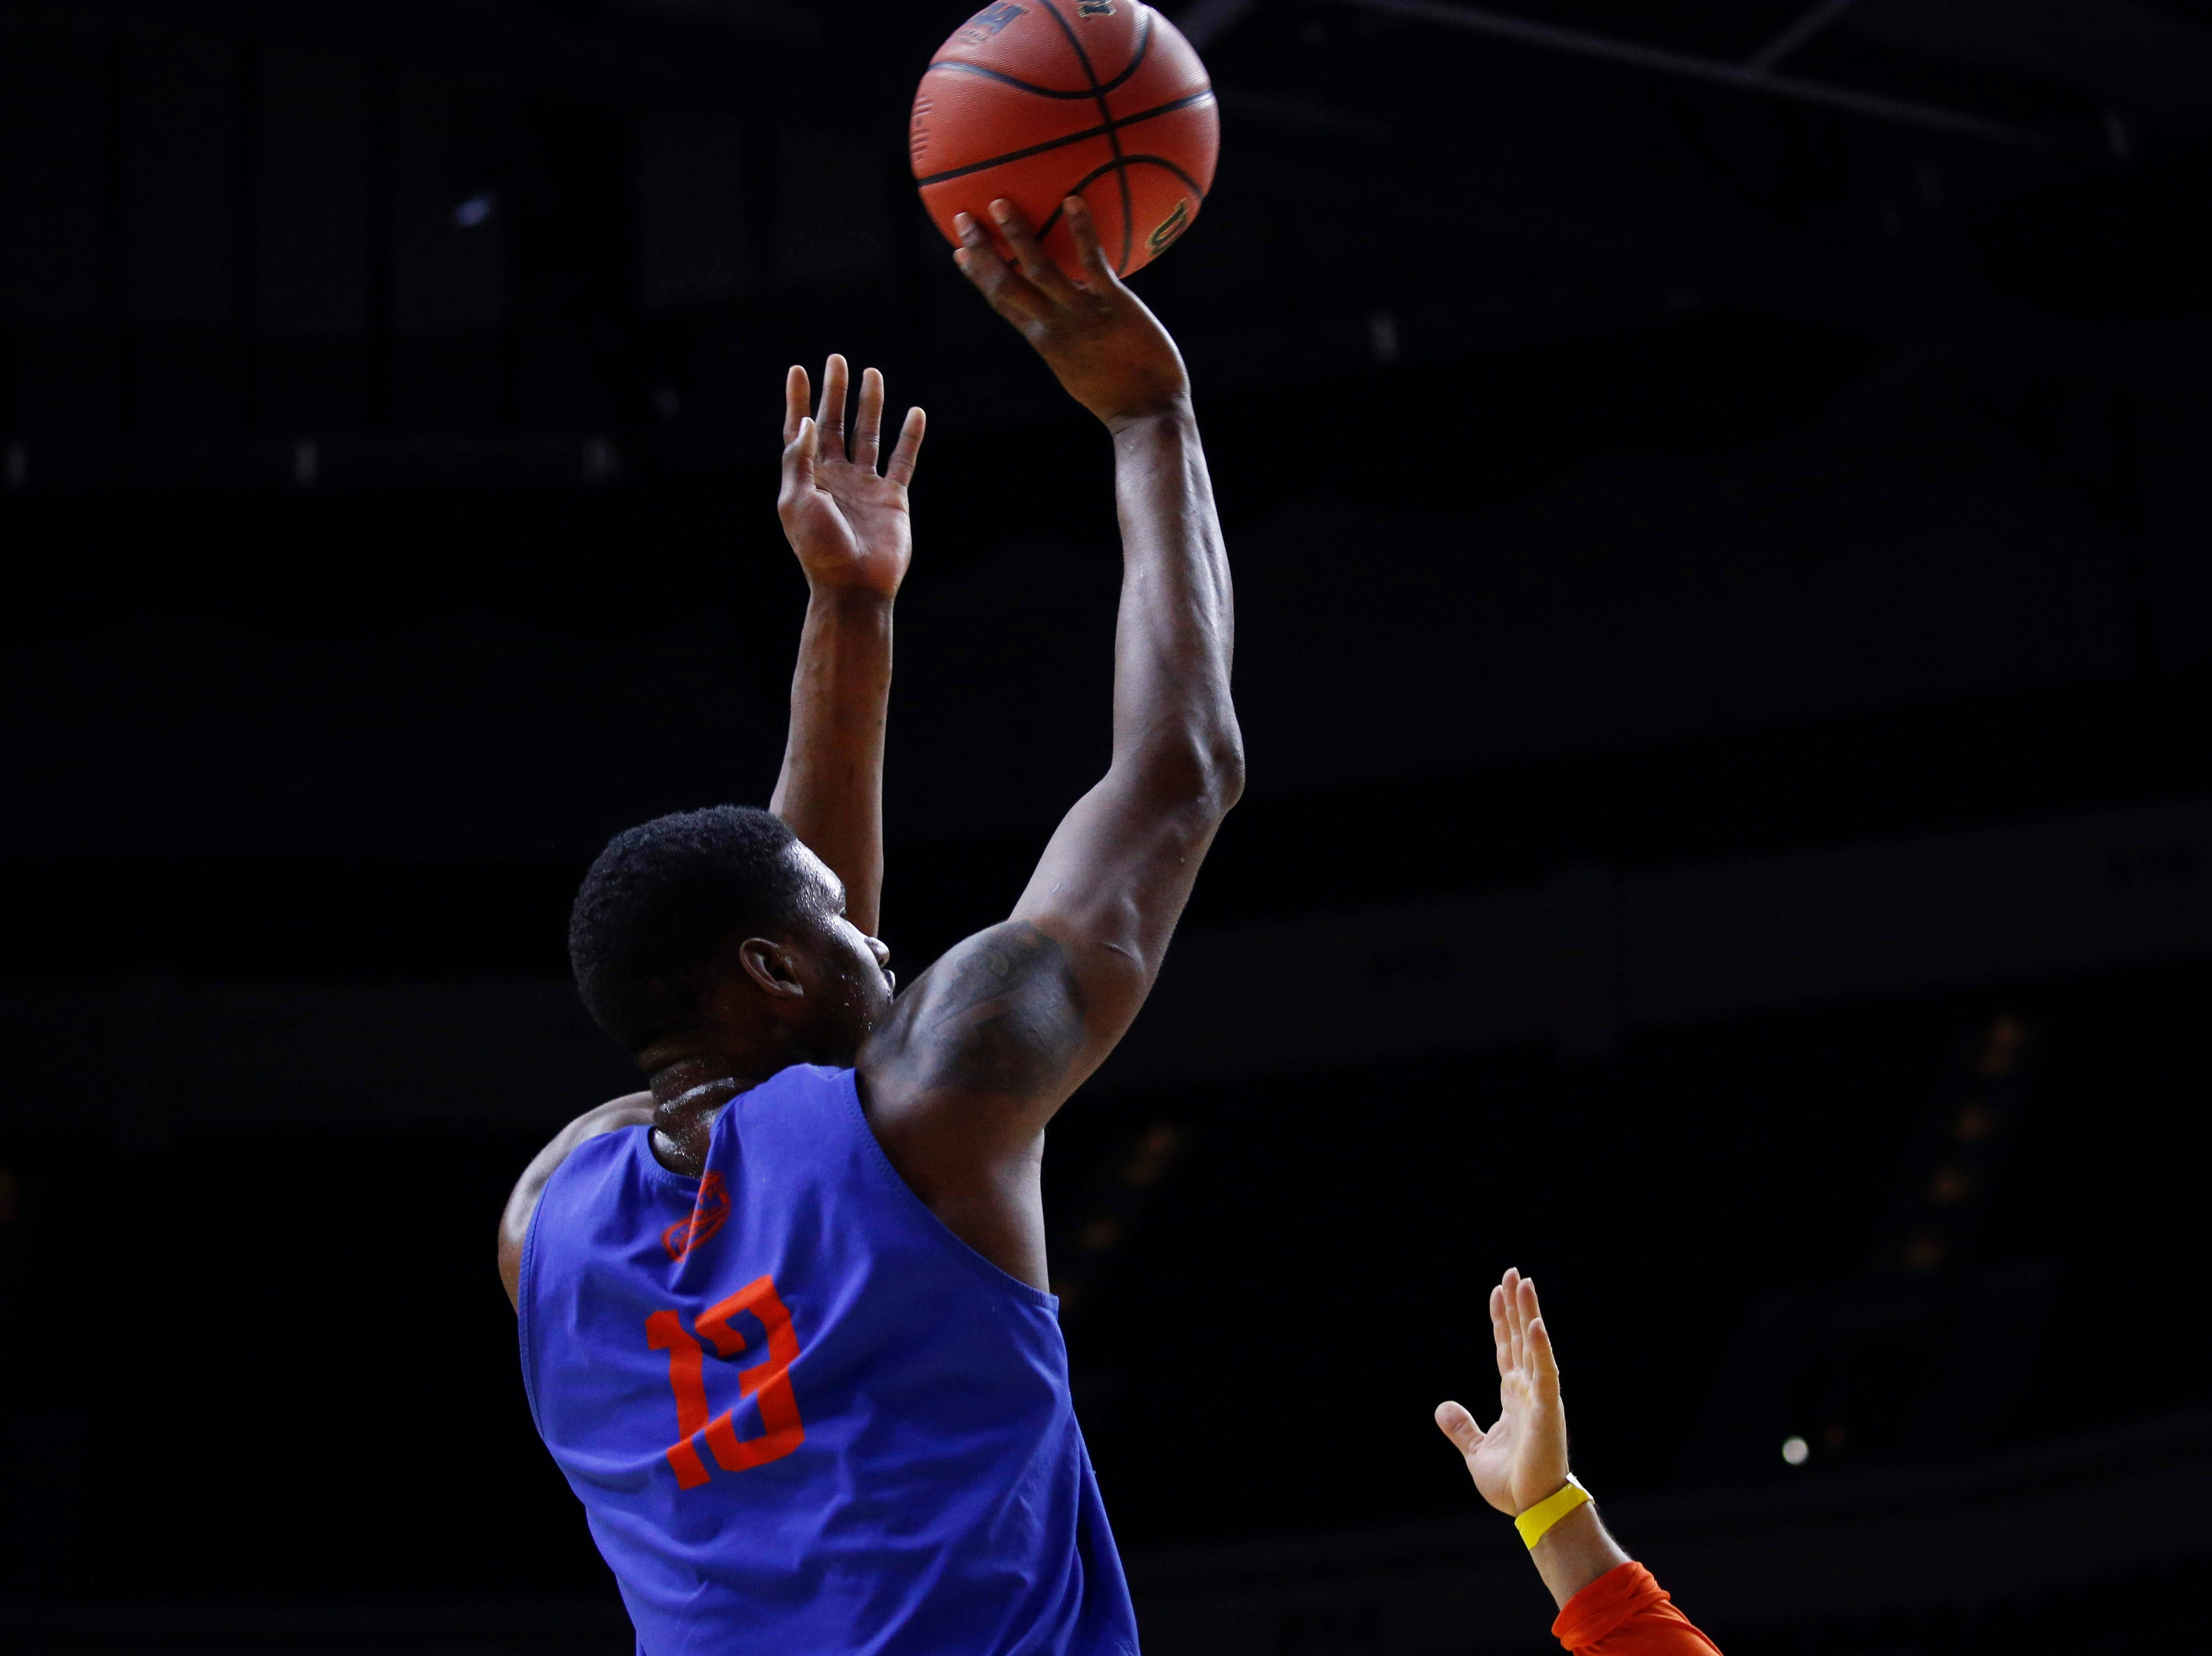 Florida senior Kevarrius Hayes shoots the ball during open practice on Wednesday, March 20, 2019, at Wells Fargo Arena in Des Moines, Iowa.